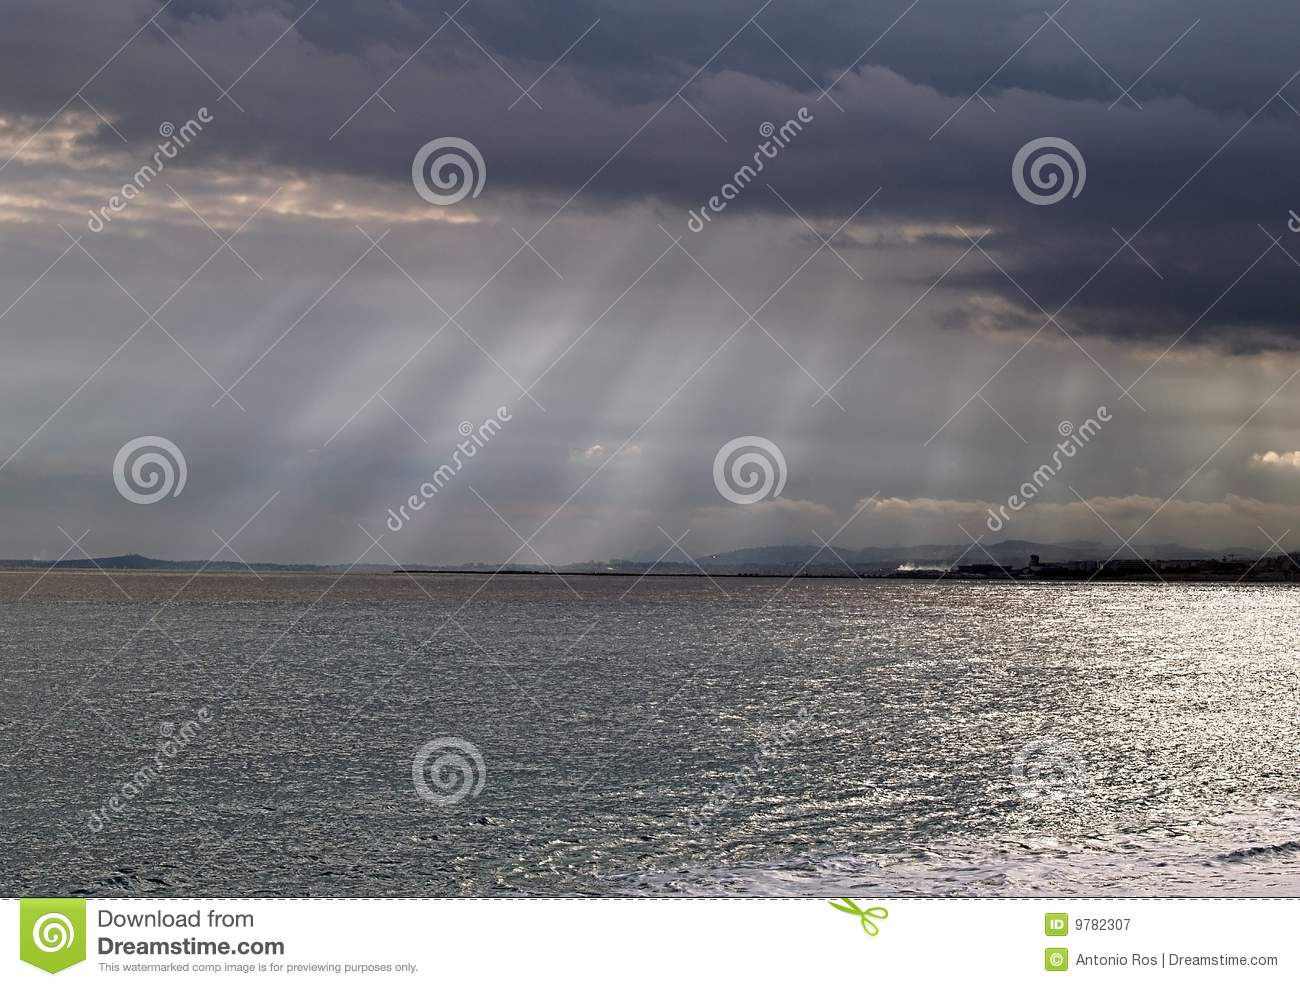 Storms on the sea in the South French coast